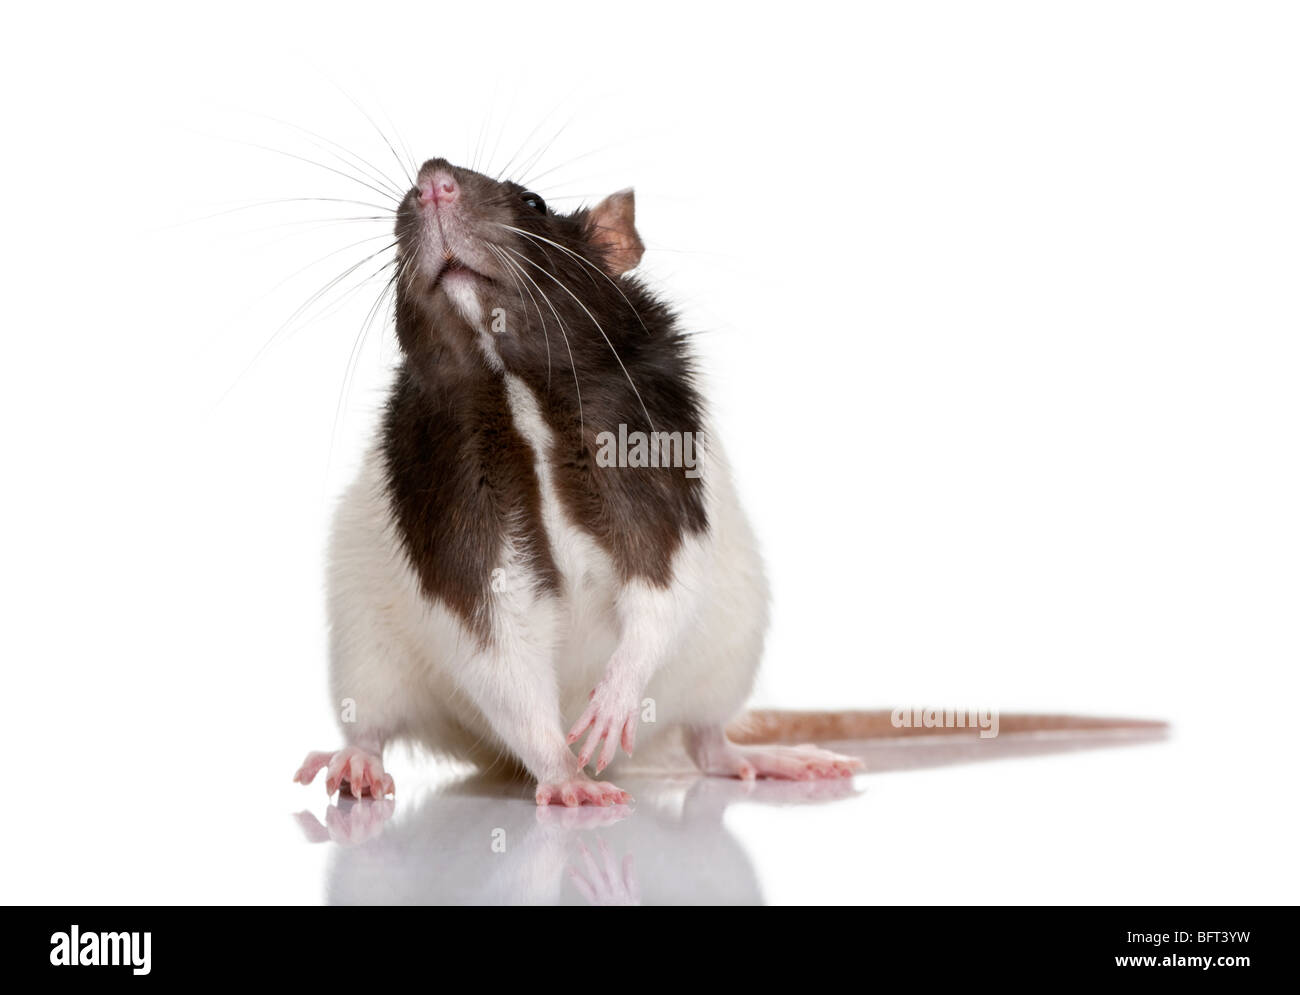 Rat,1 year old, standing in front of a white background, studio shot - Stock Image